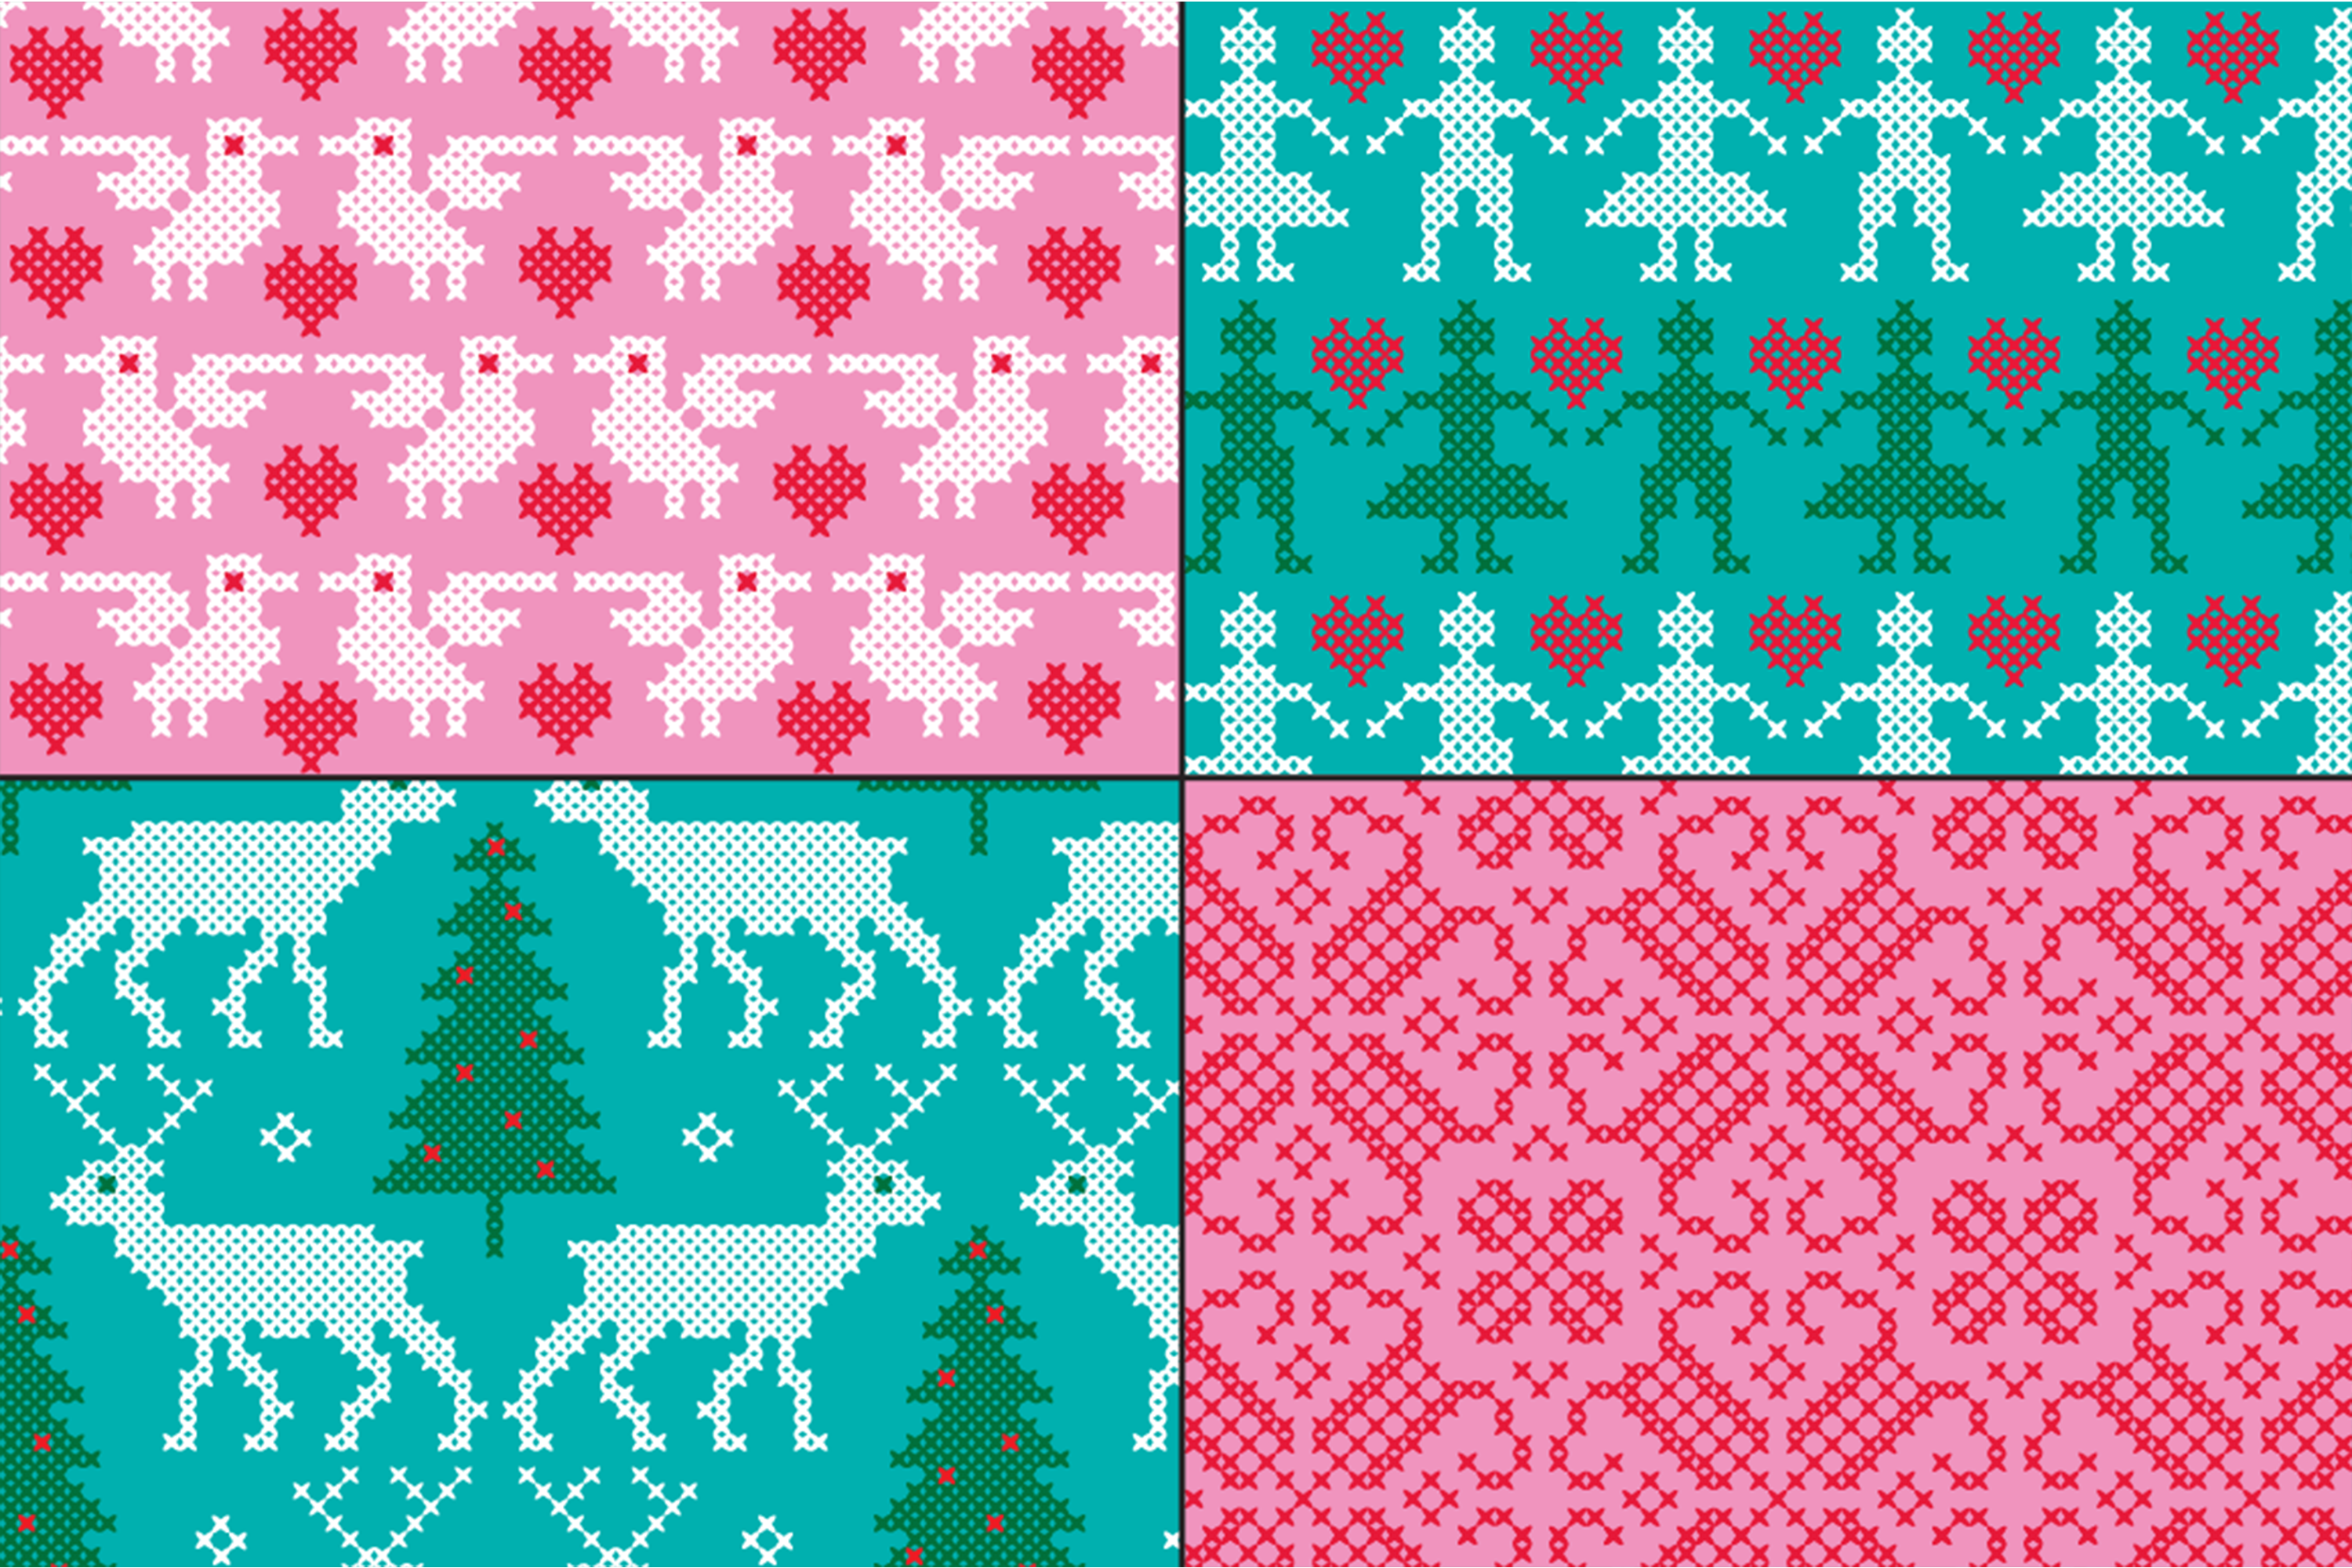 Embroidered Nordic Patterns & Graphics Bundle example image 3